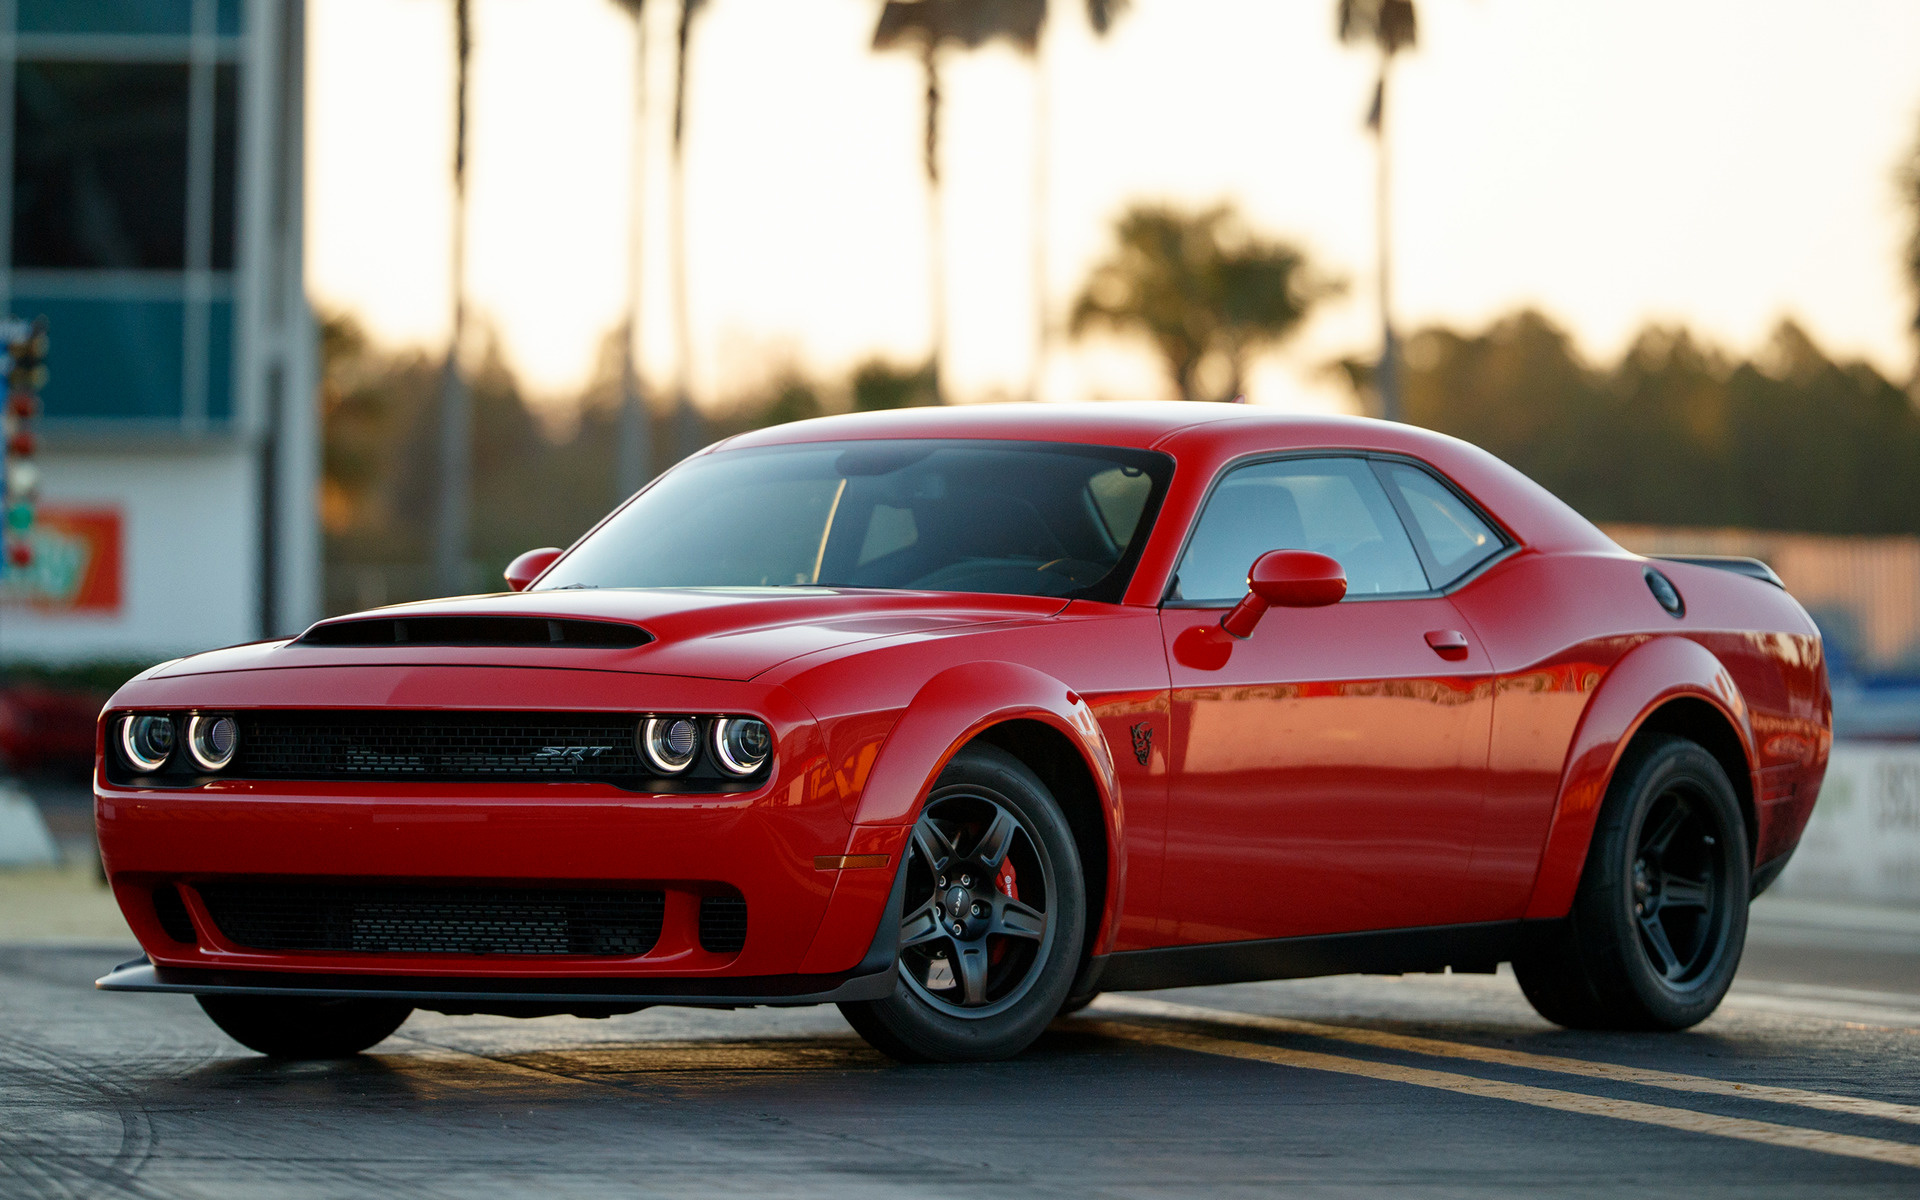 2018 Dodge Challenger Srt Demon Wallpapers And Hd Images